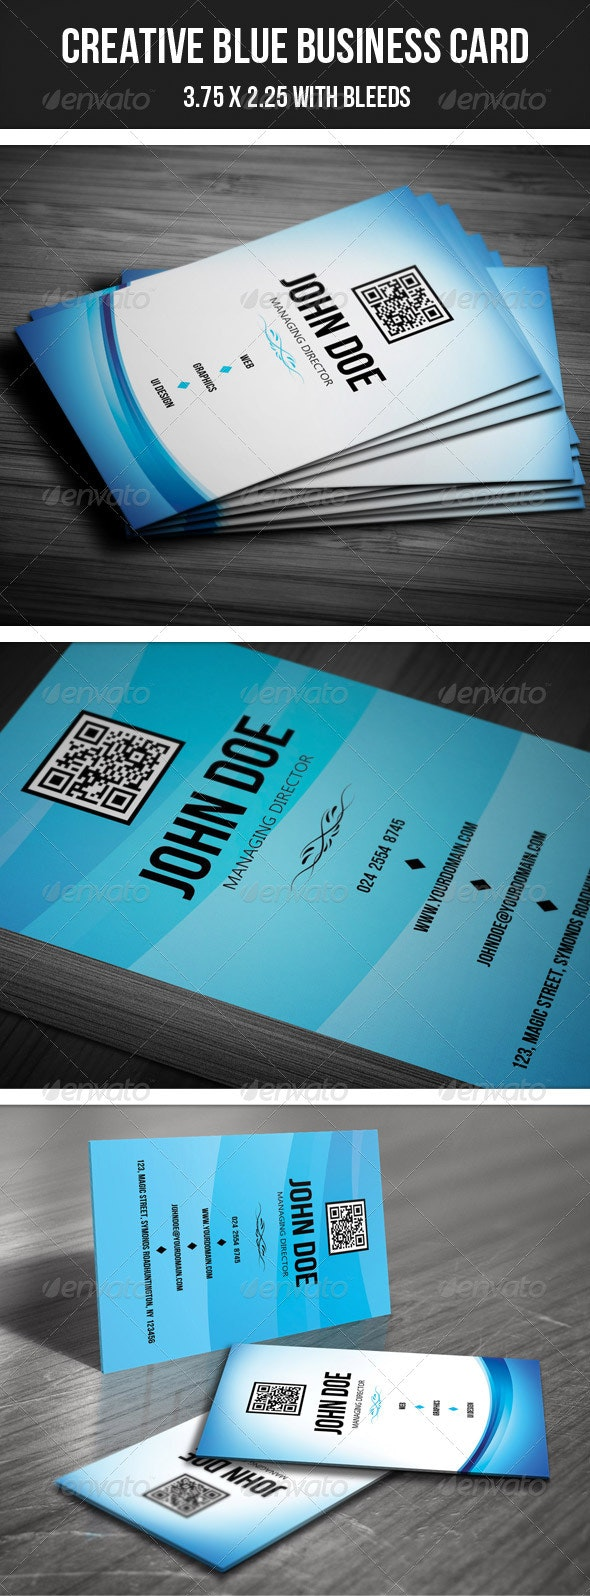 Creative Blue Business Card - 34 - Creative Business Cards